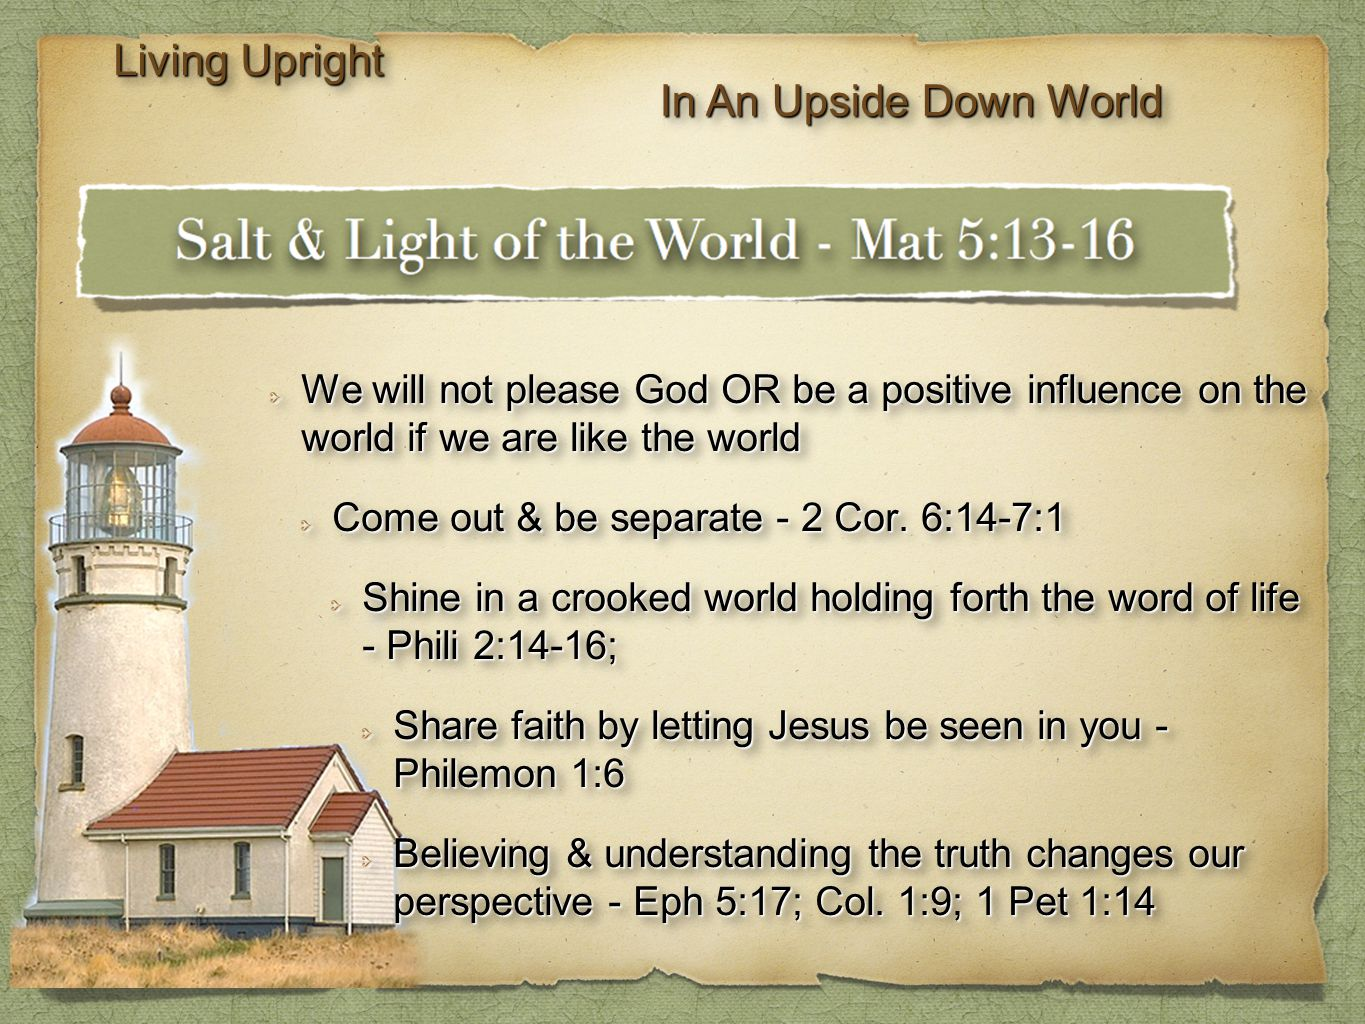 We will not please God OR be a positive influence on the world if we are like the world Come out & be separate - 2 Cor.